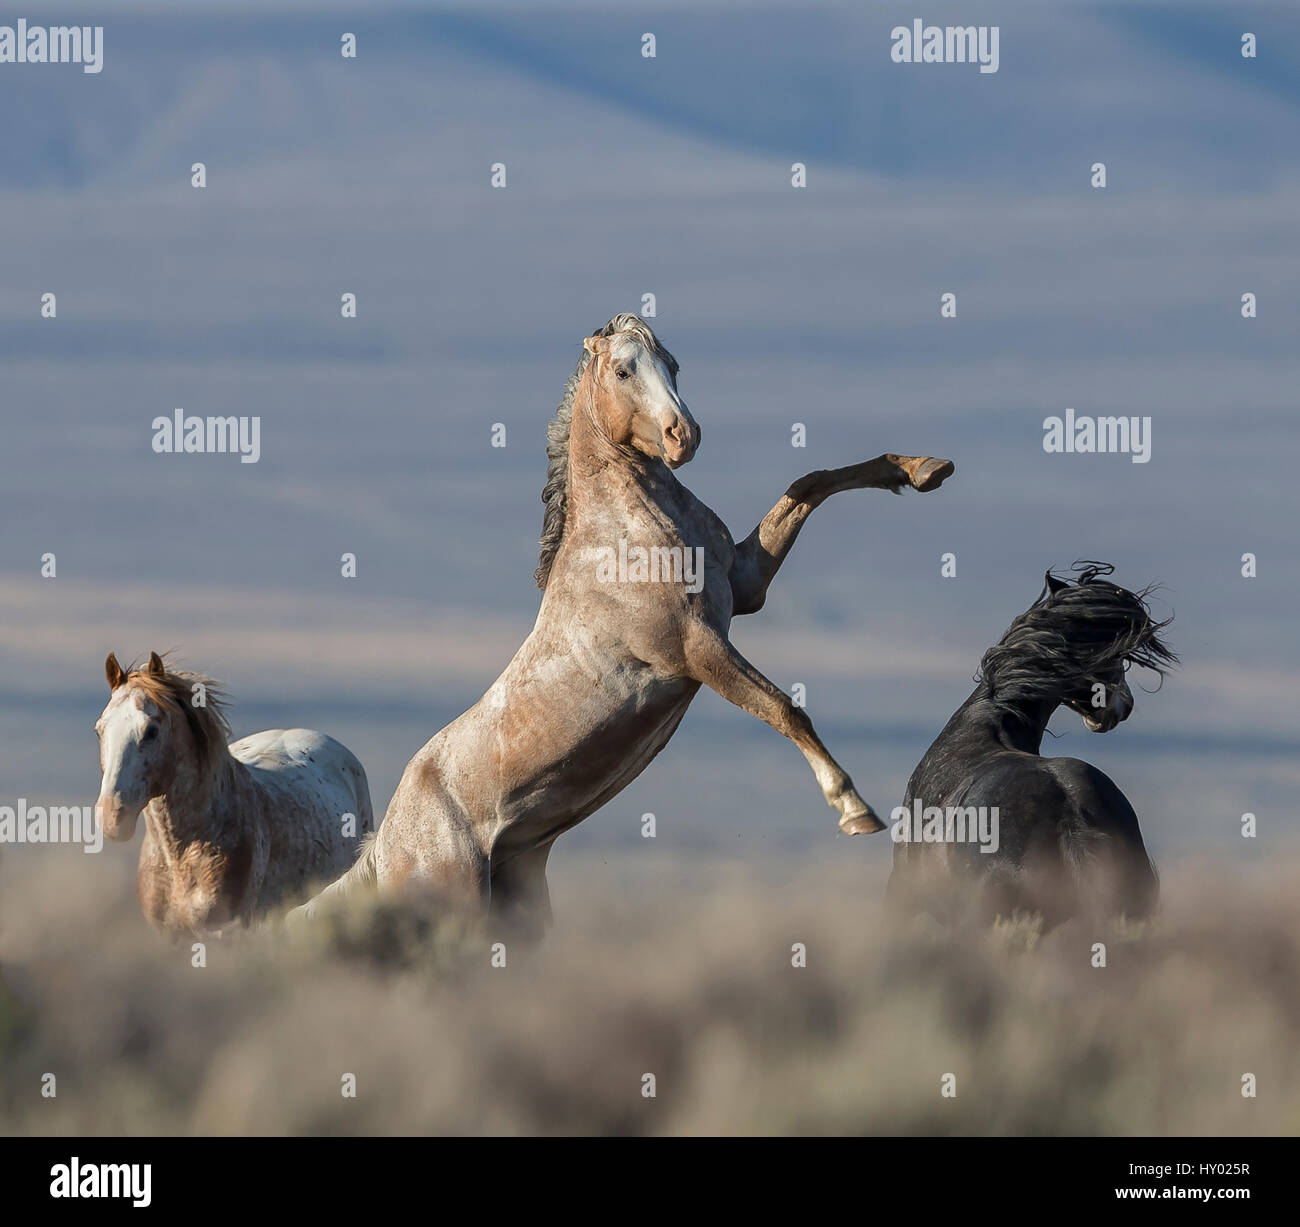 Wild pinto Mustang stallion rearing, White Mountain, Wyoming, USA. August 2014. - Stock Image